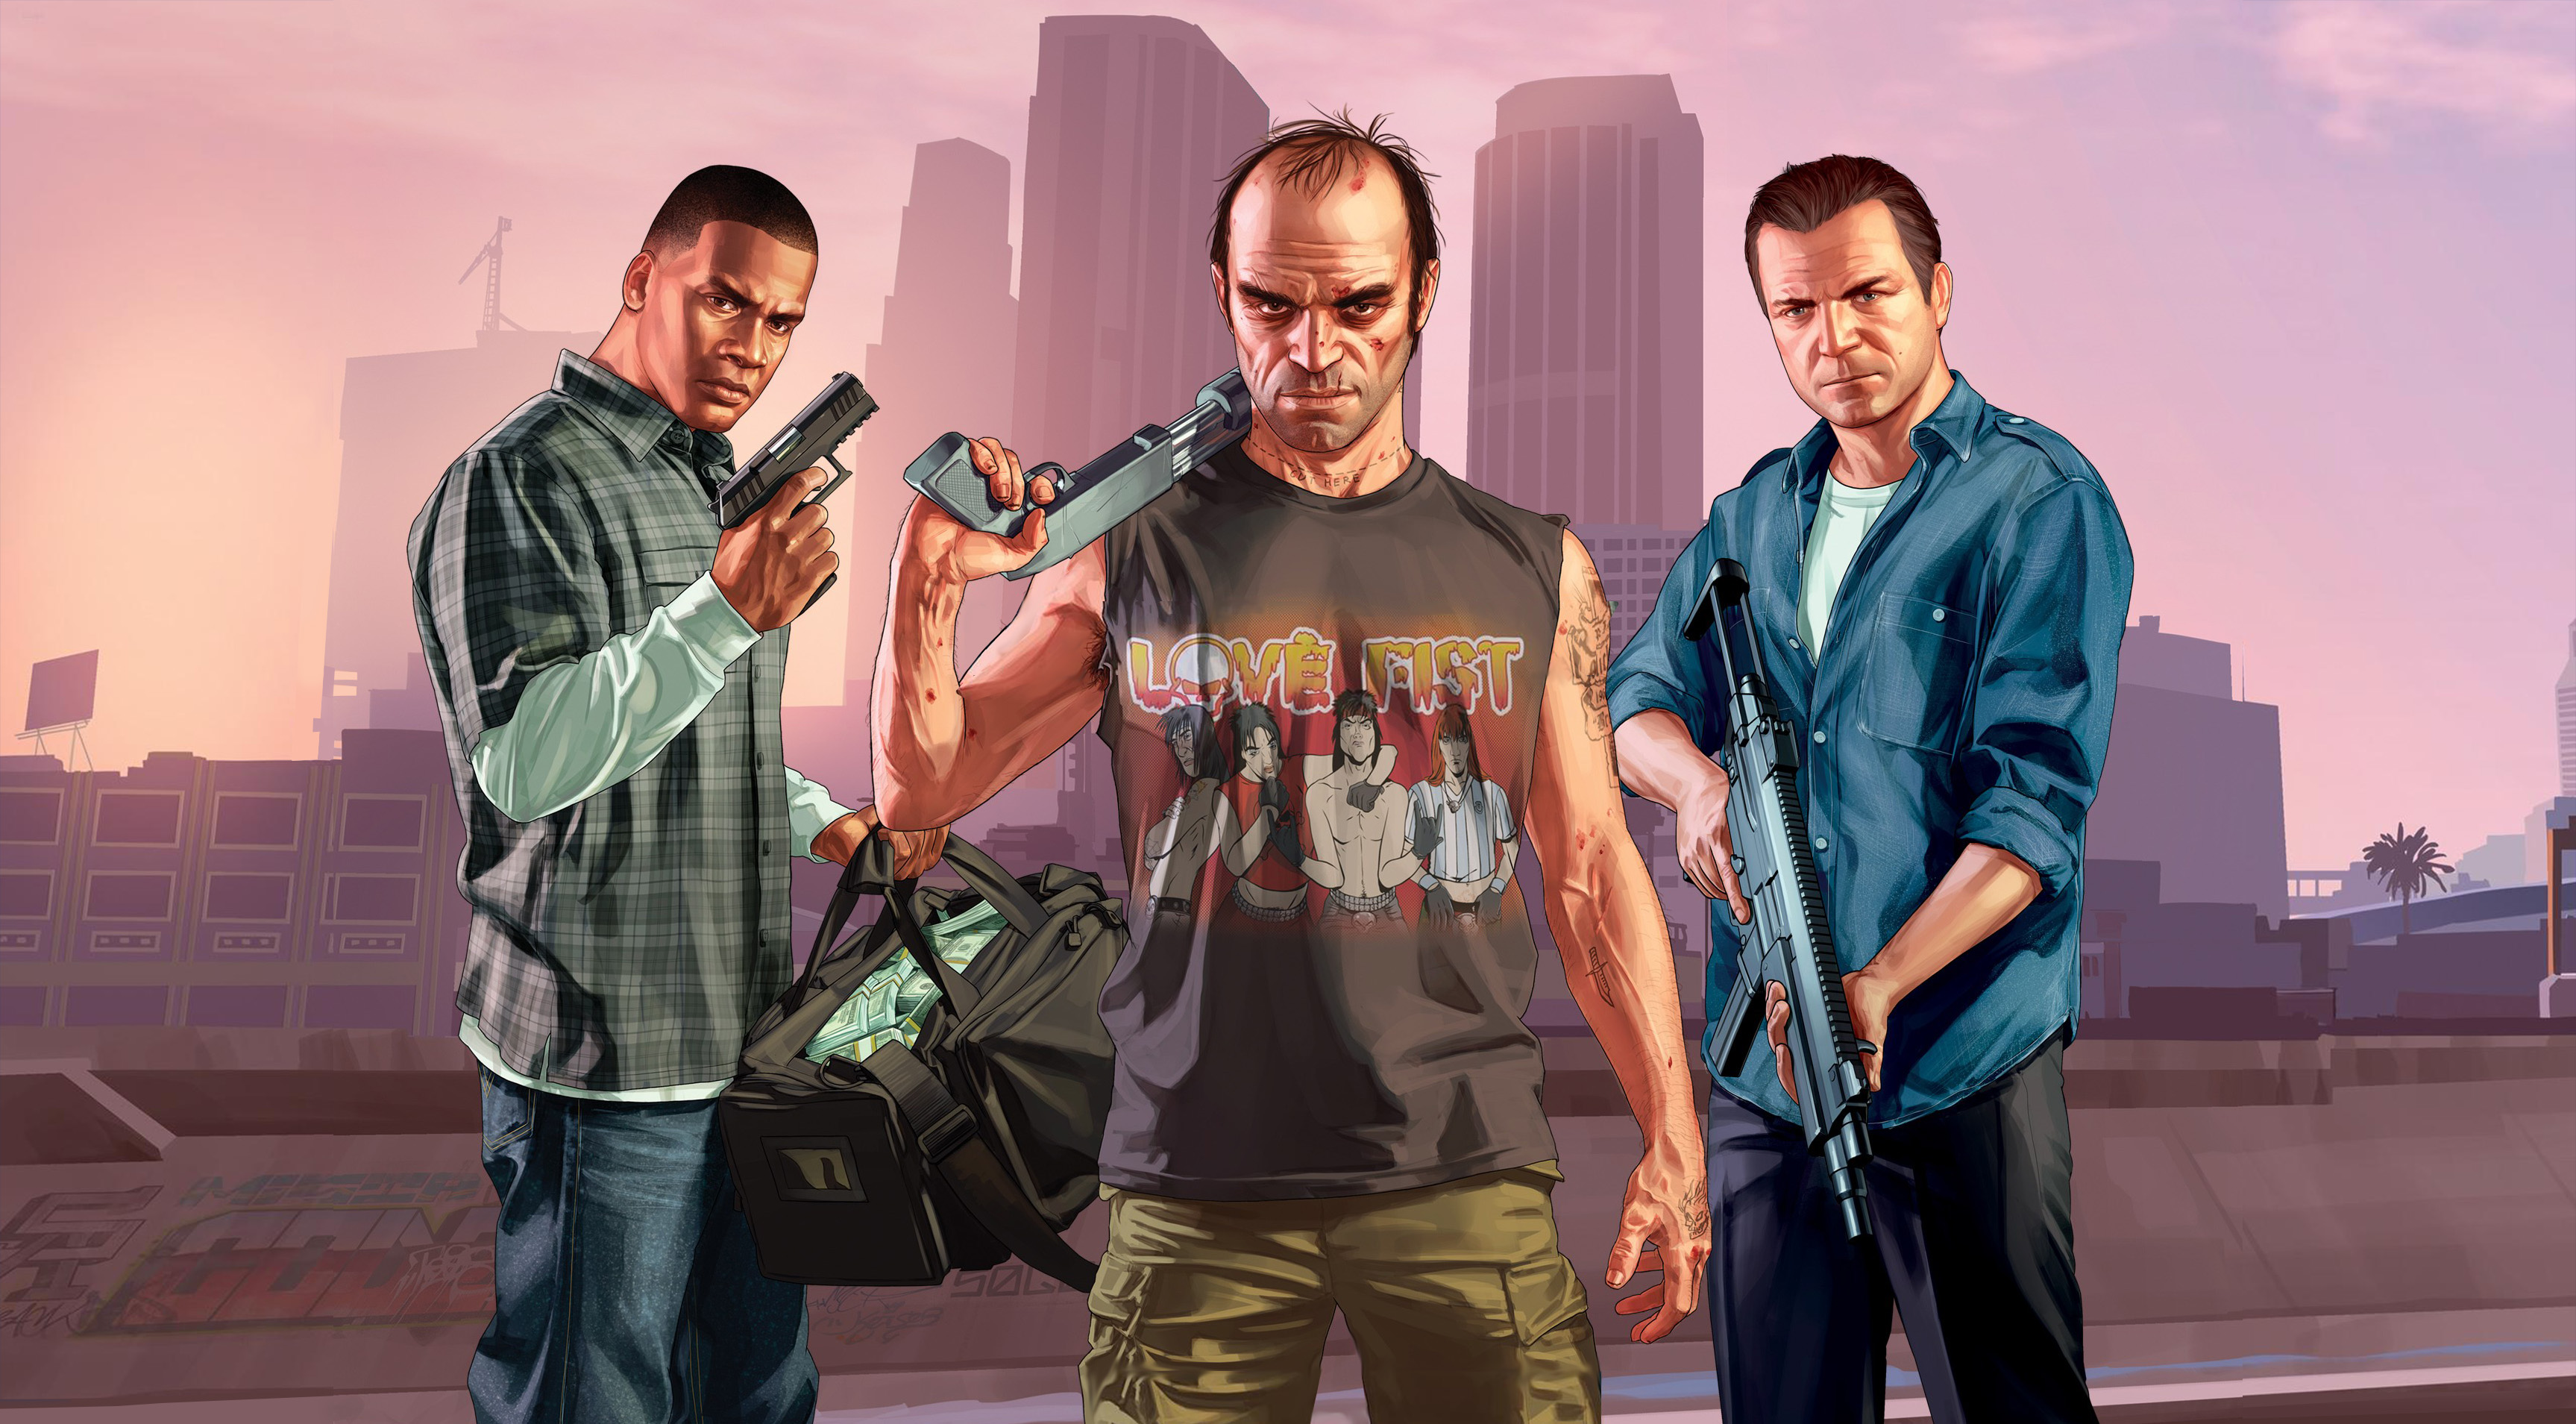 gta5-artwork-76-hd.jpg